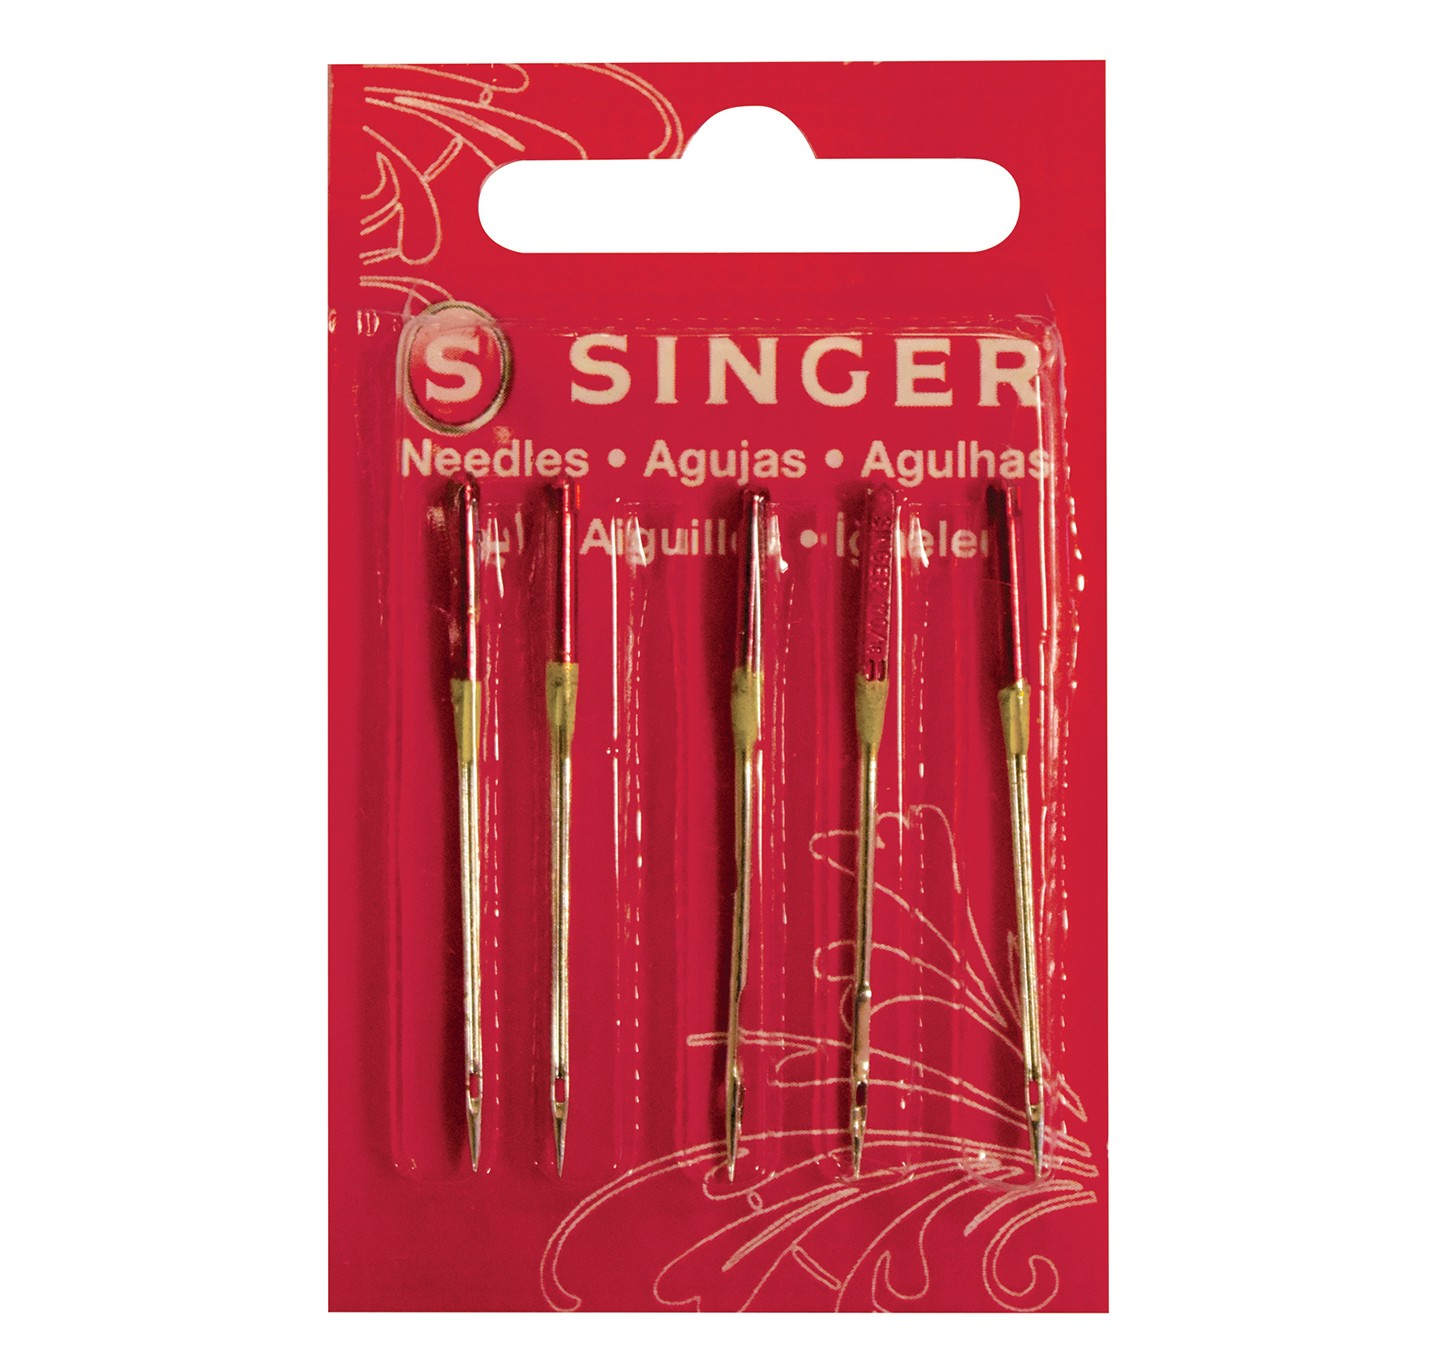 SINGER 2020 - 14 SEWING NEEDLE